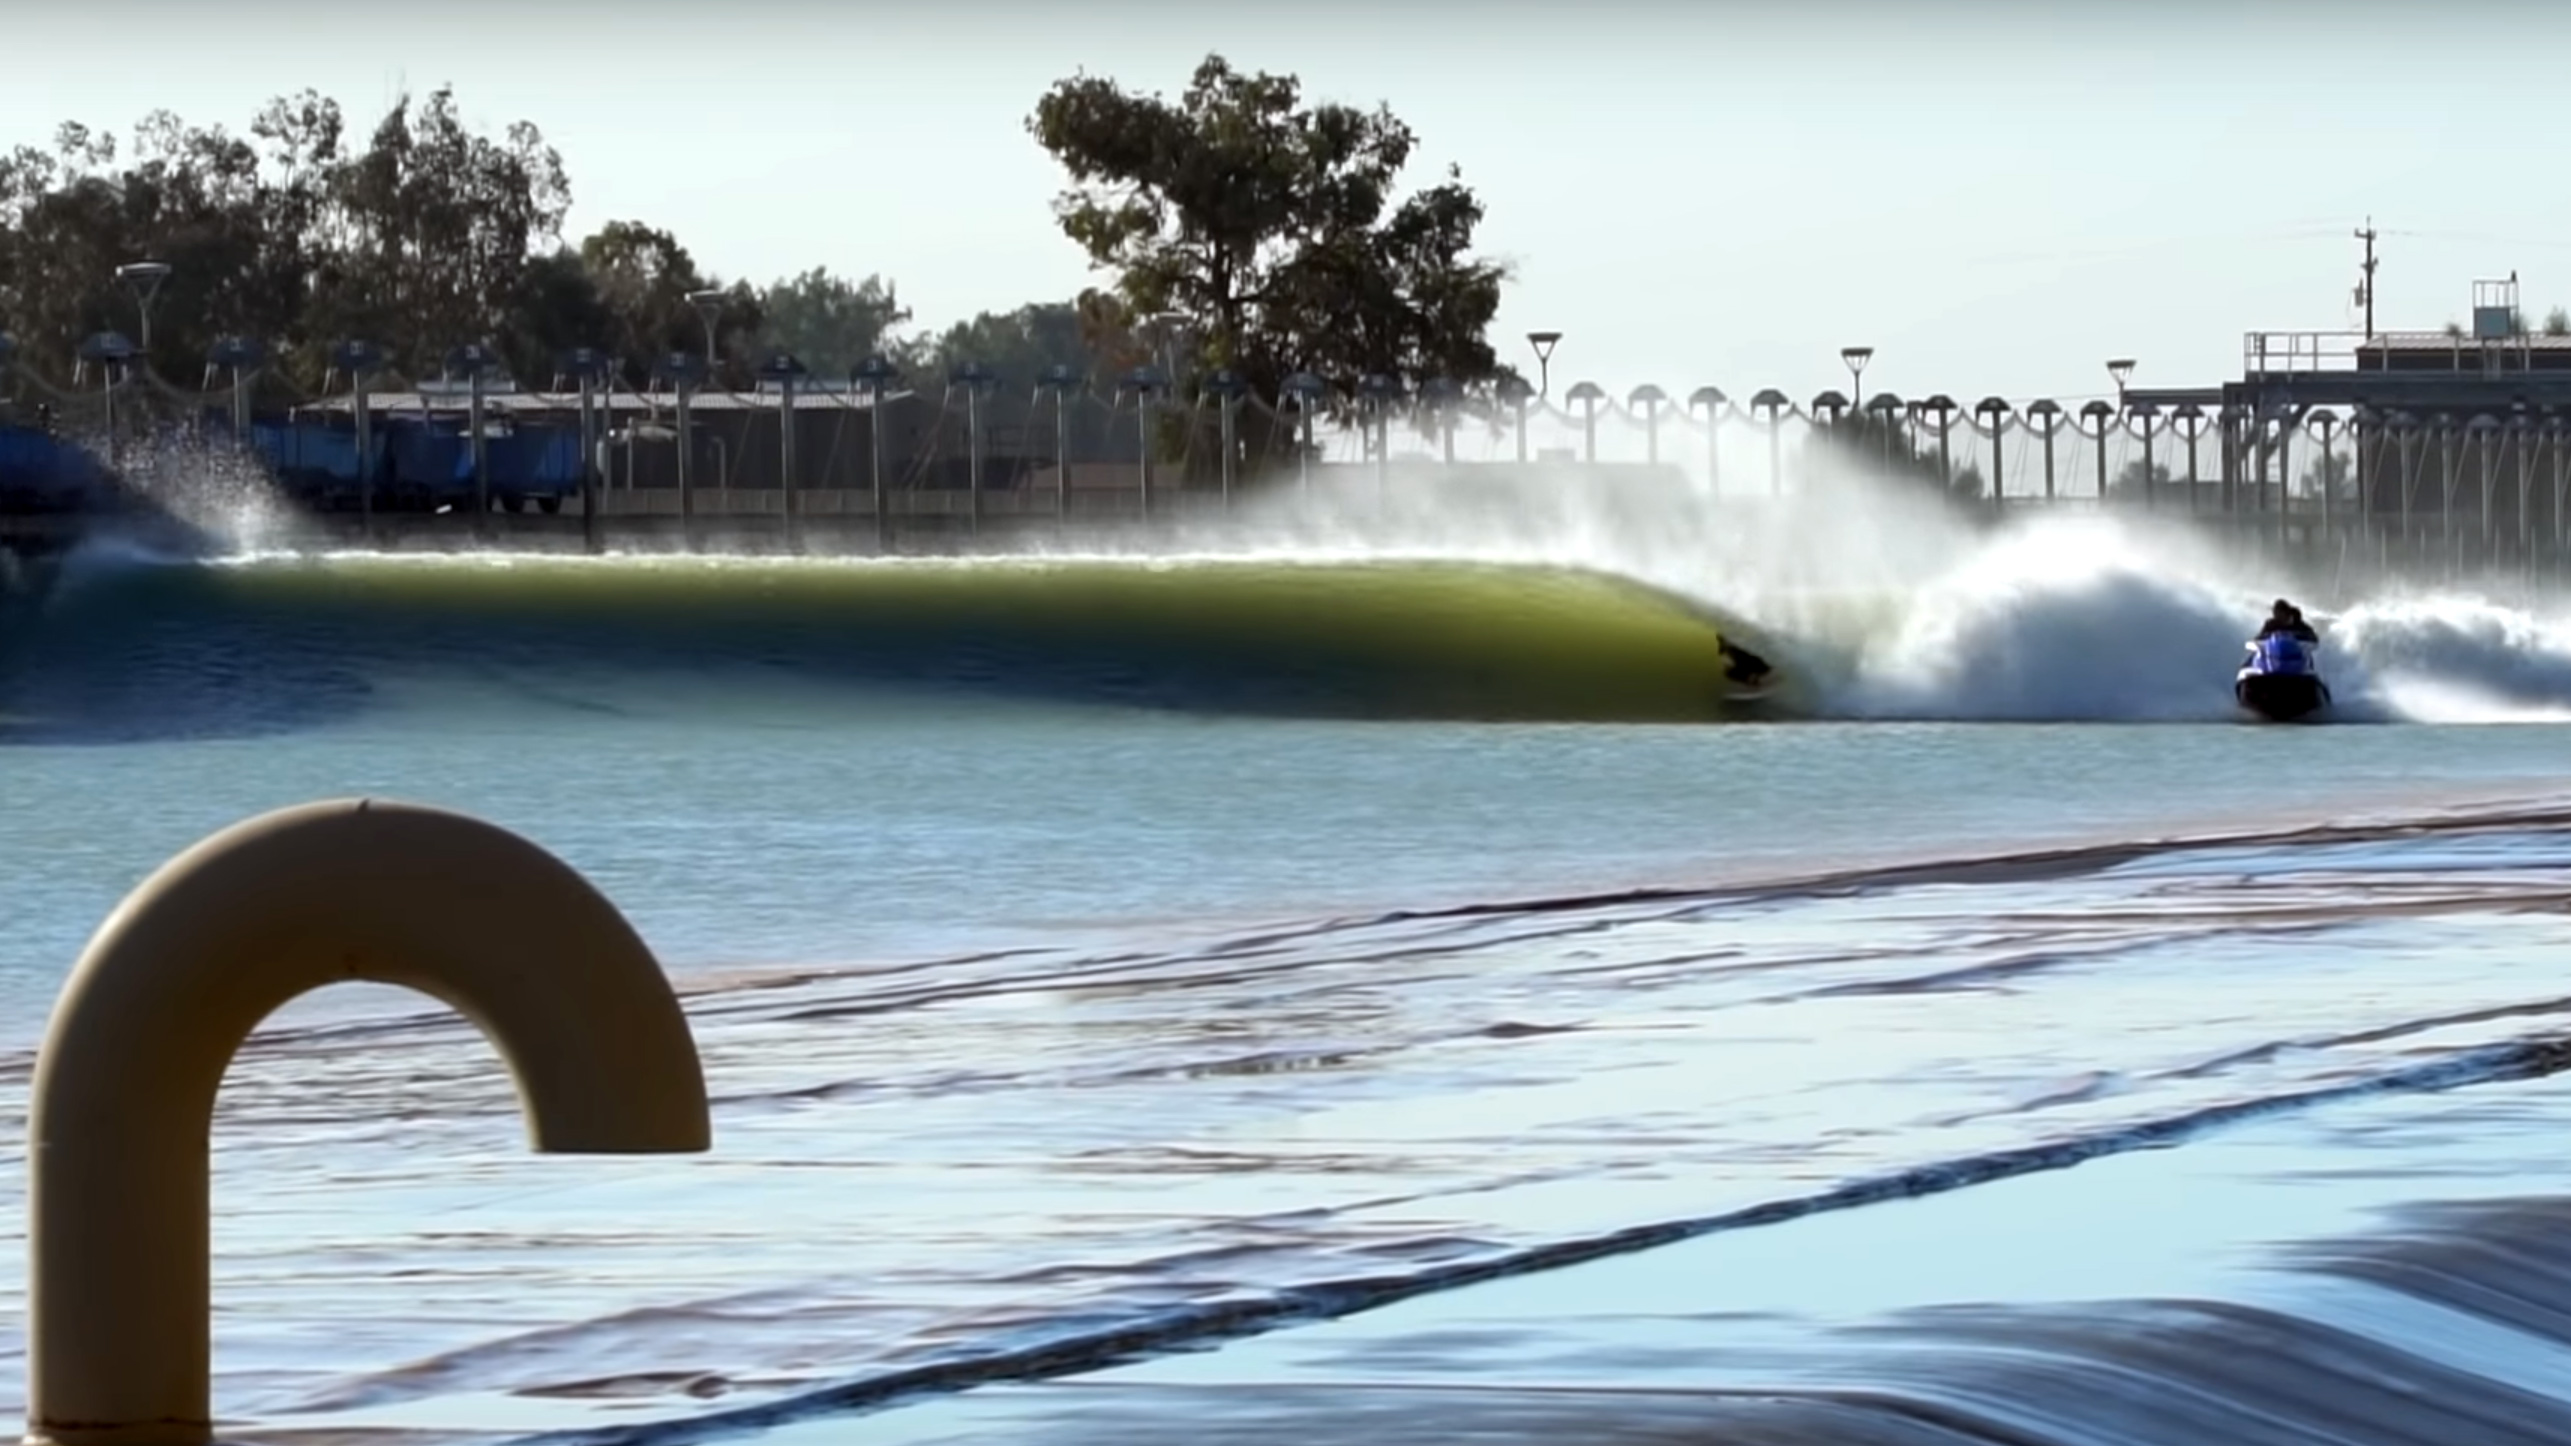 BenGravy surfing at the kelly slater wave pool